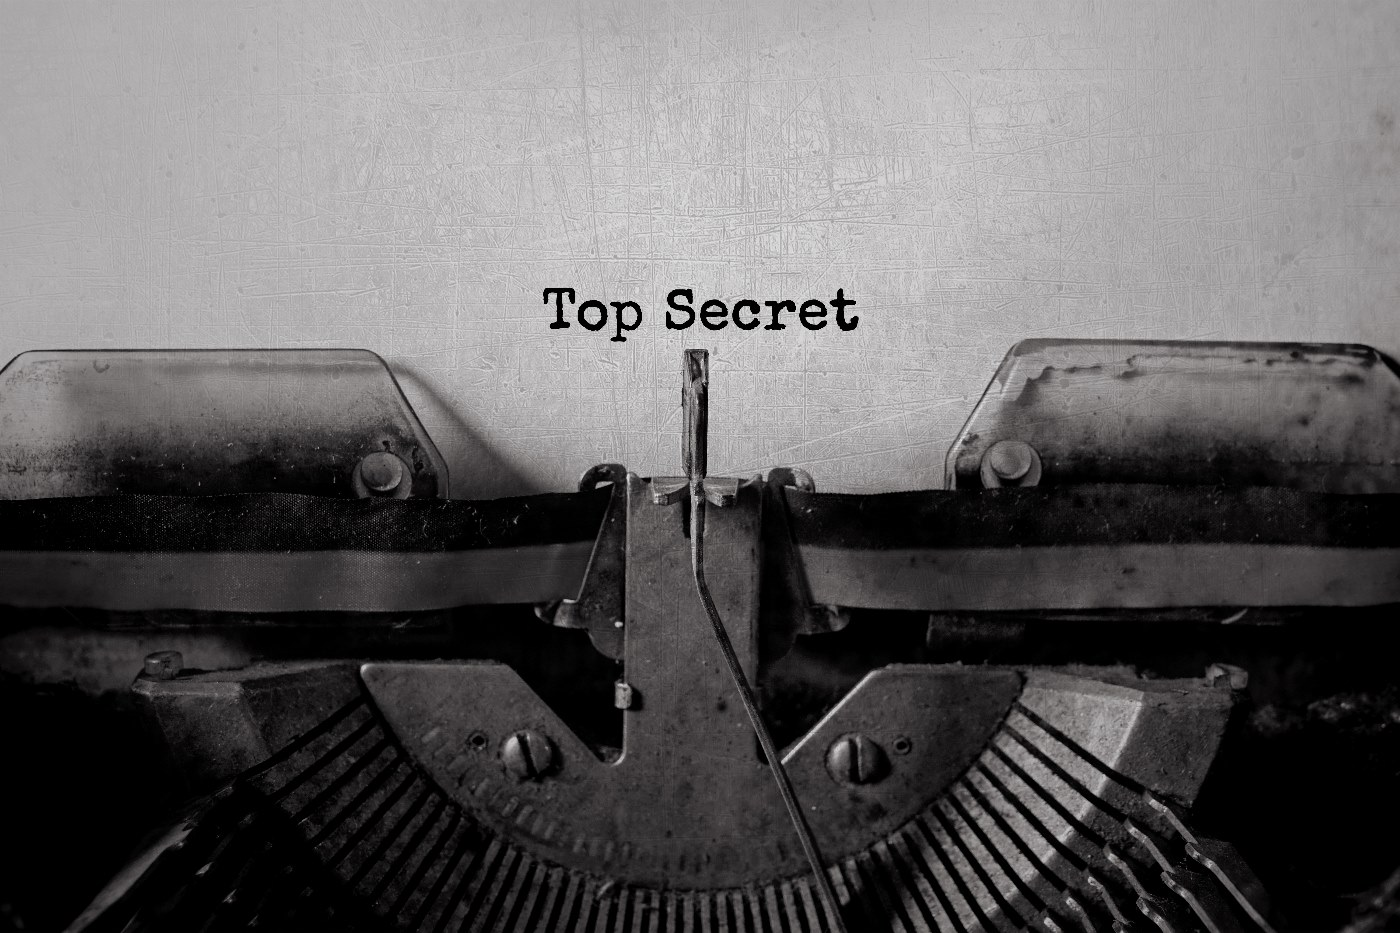 Top secret escape game en ligne